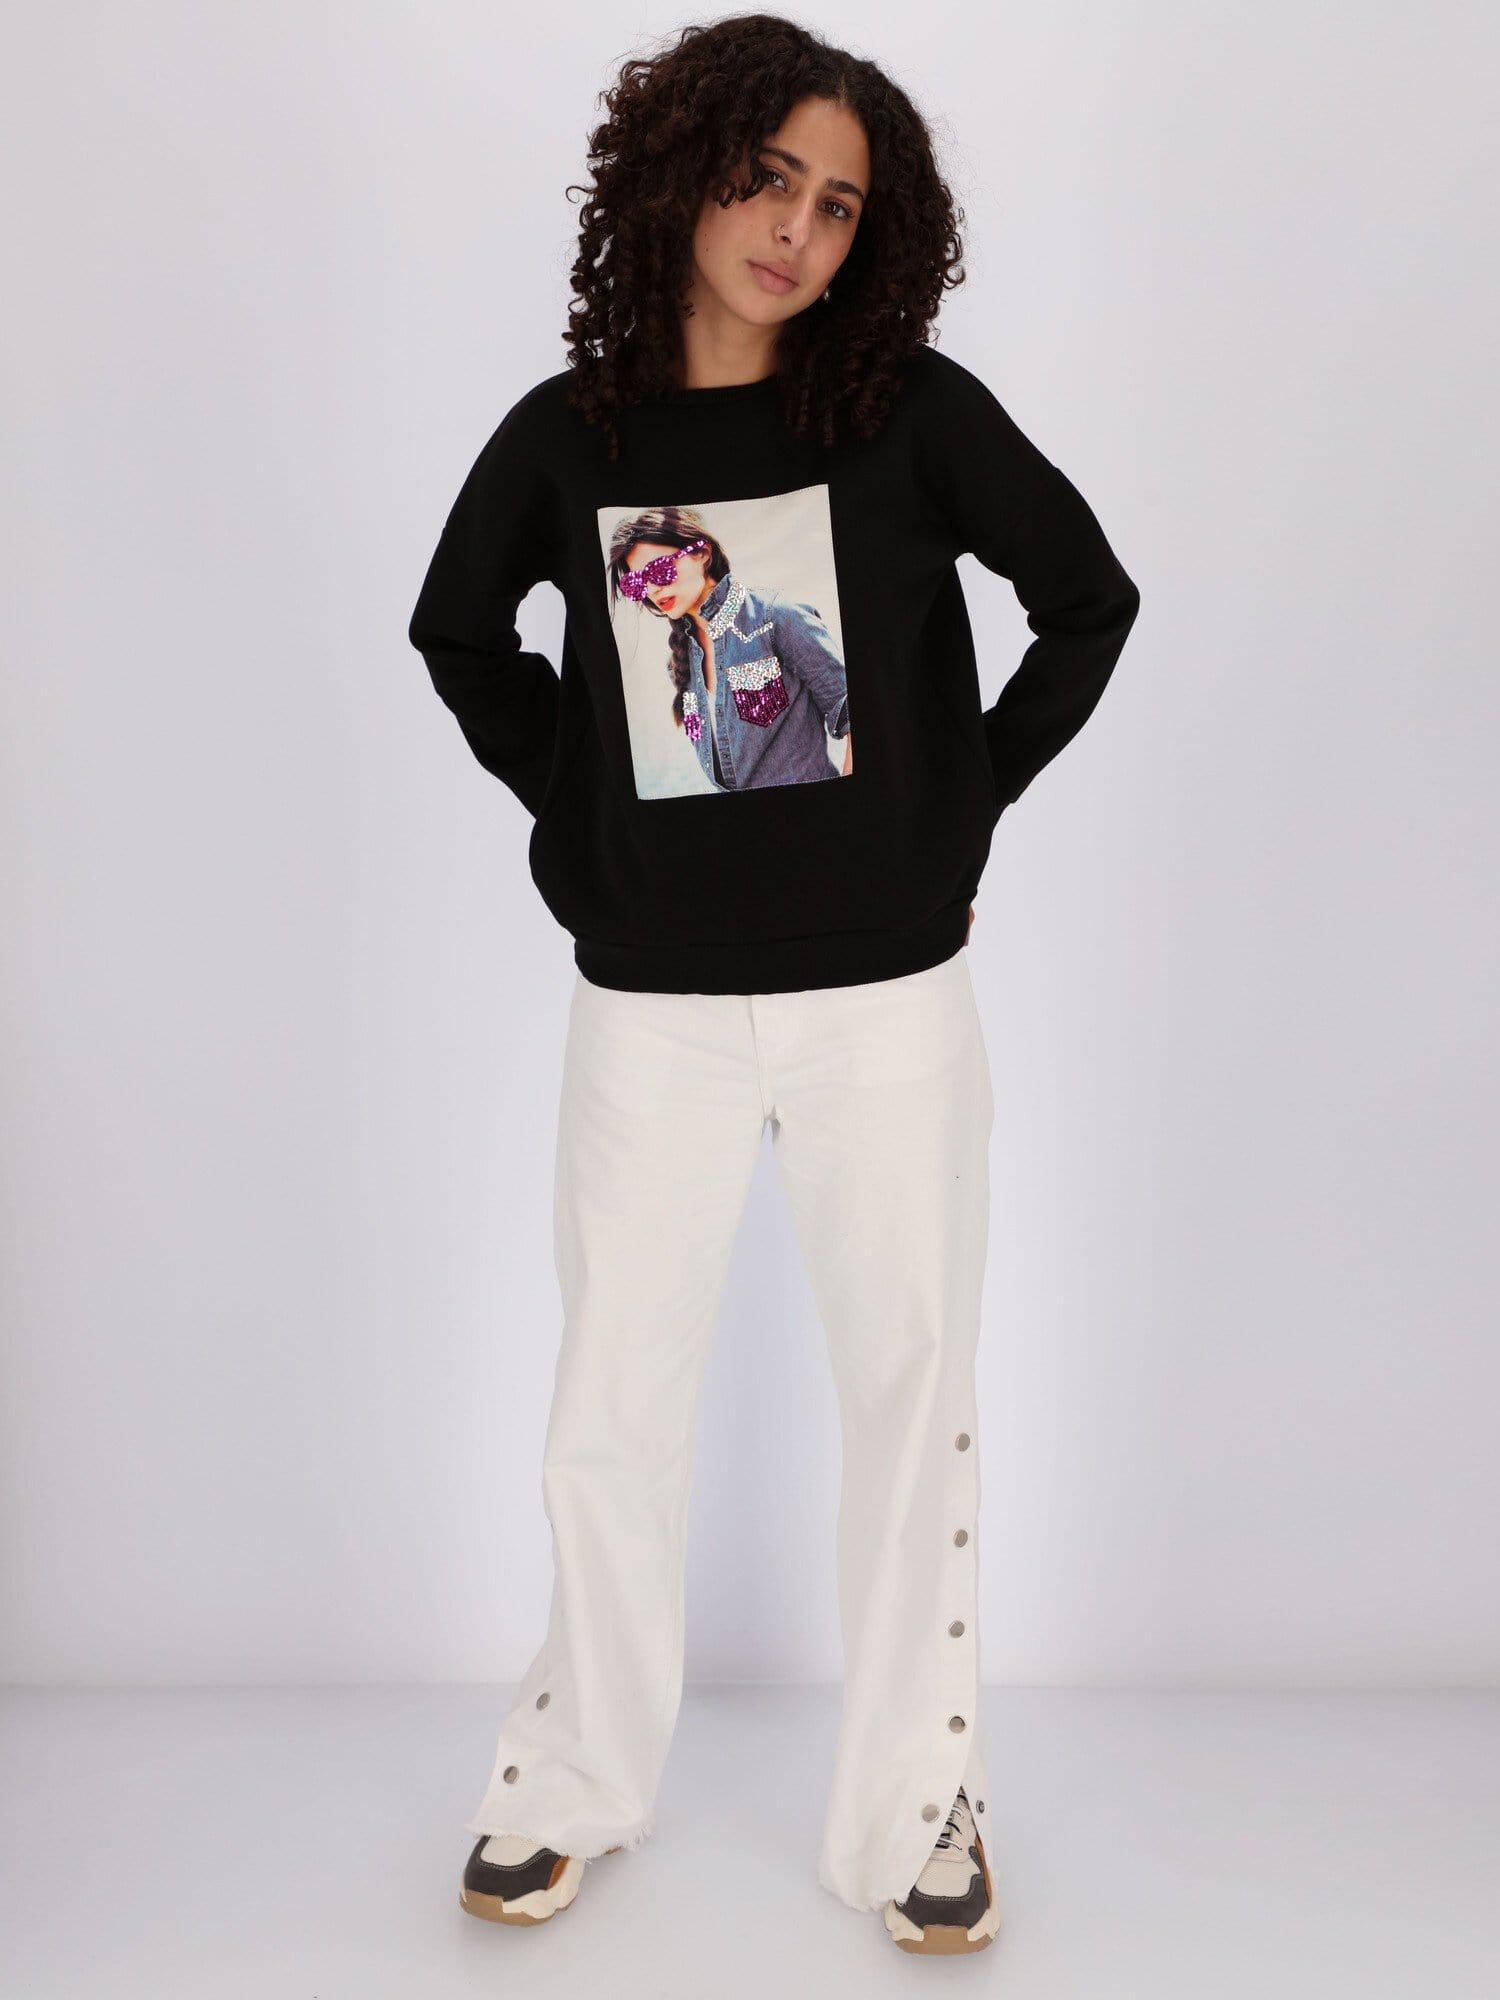 OR Sweatshirts & Hoodies Lady with Glasses Printed Sweatshirt